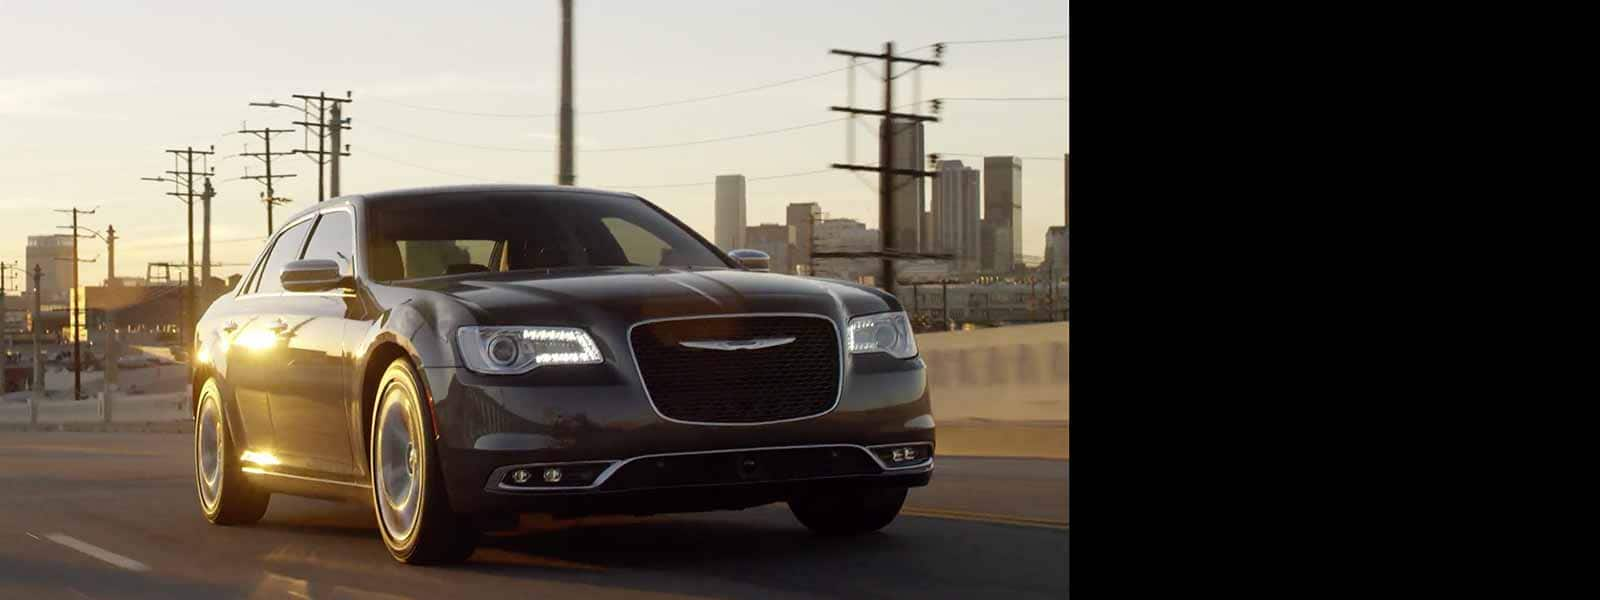 2016 Chrysler Vehicle